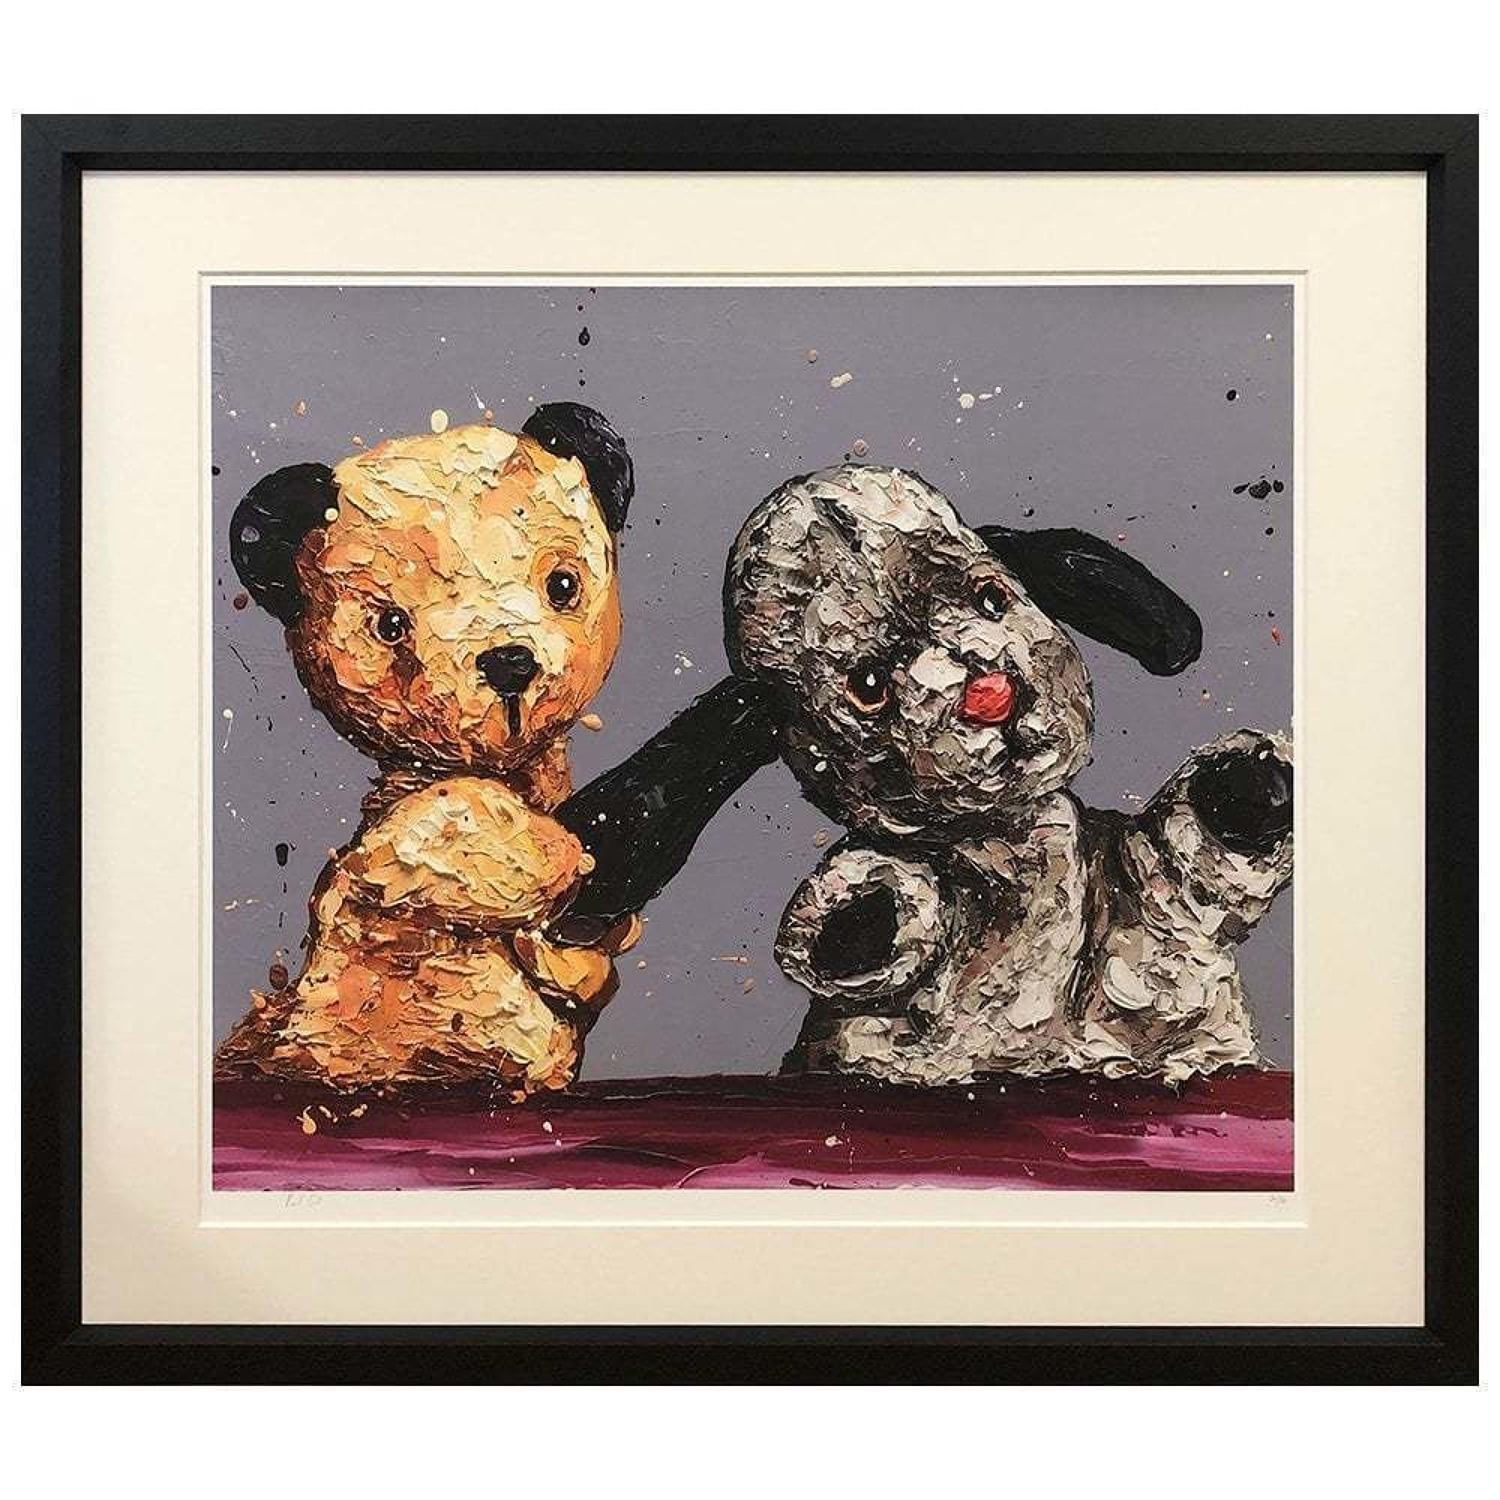 The Sooty Show Framed Art Print by Paul Oz